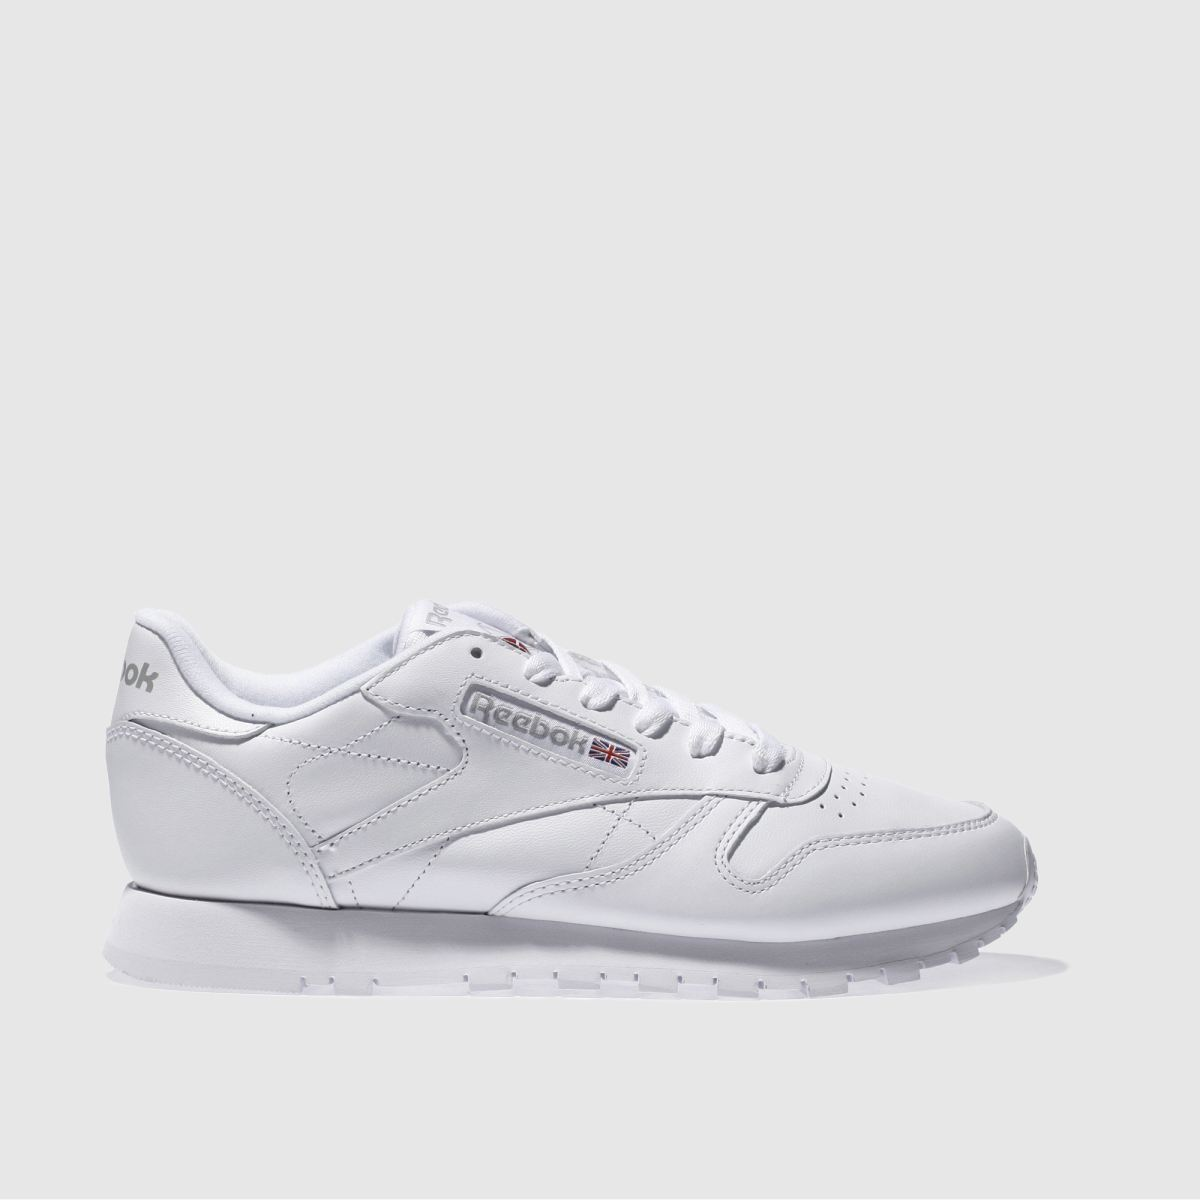 6a6092de26b581 Reebok White Classic Leather Trainers - Schuh at Westquay - Shop Online